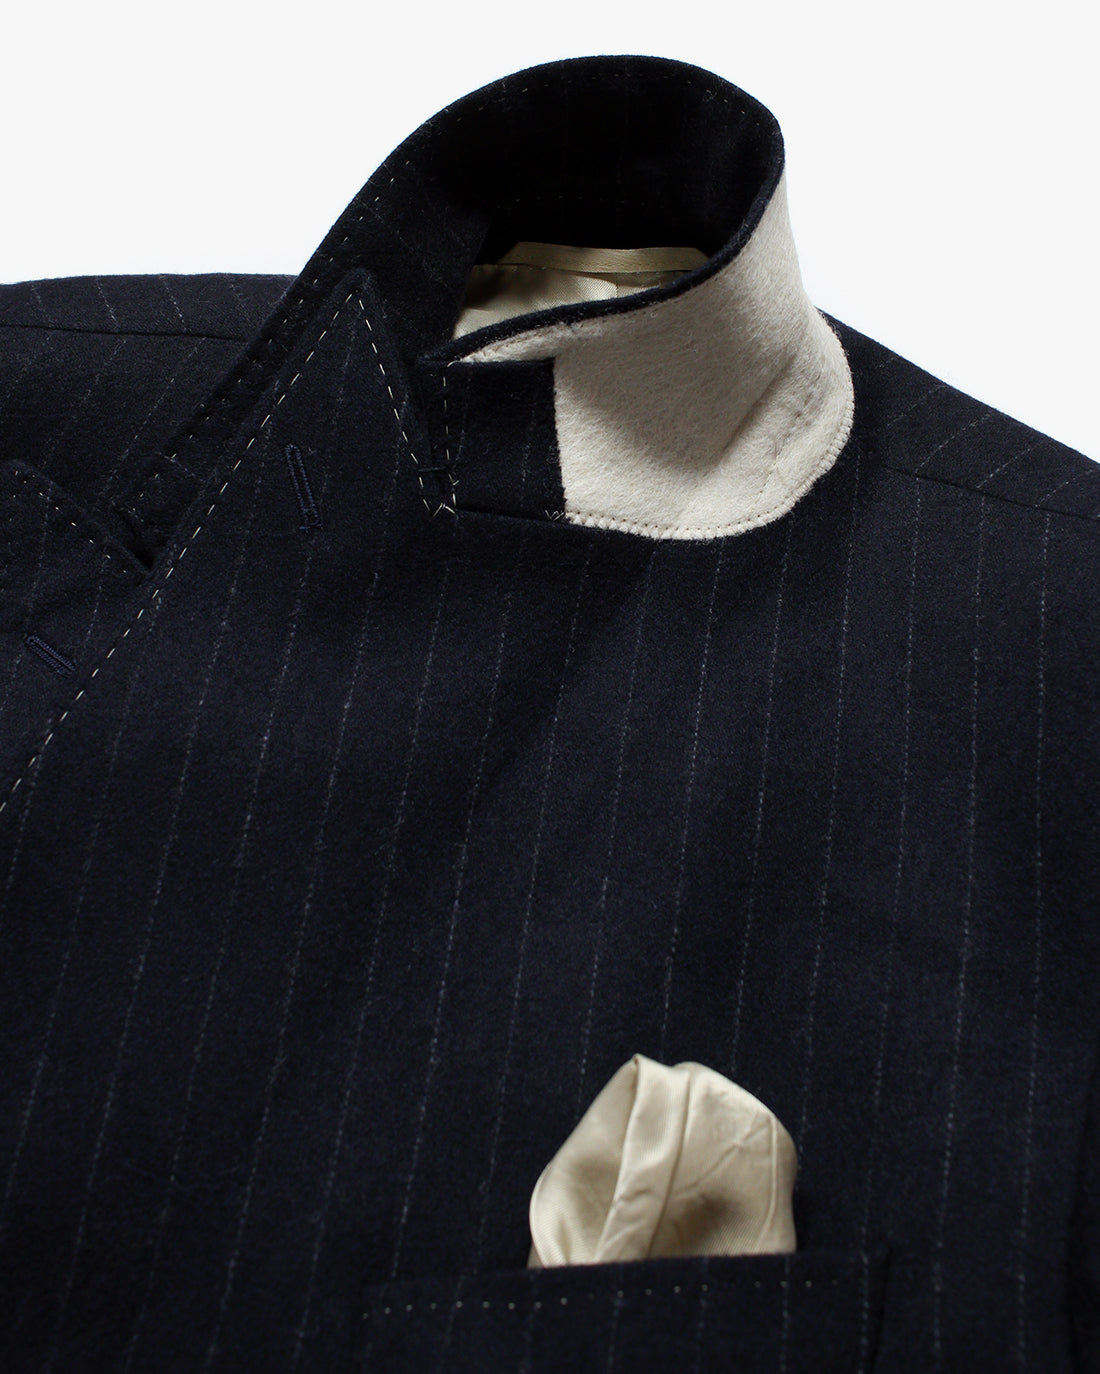 Navy pinstripe Double Breasted Overcoat - Holland Esquire